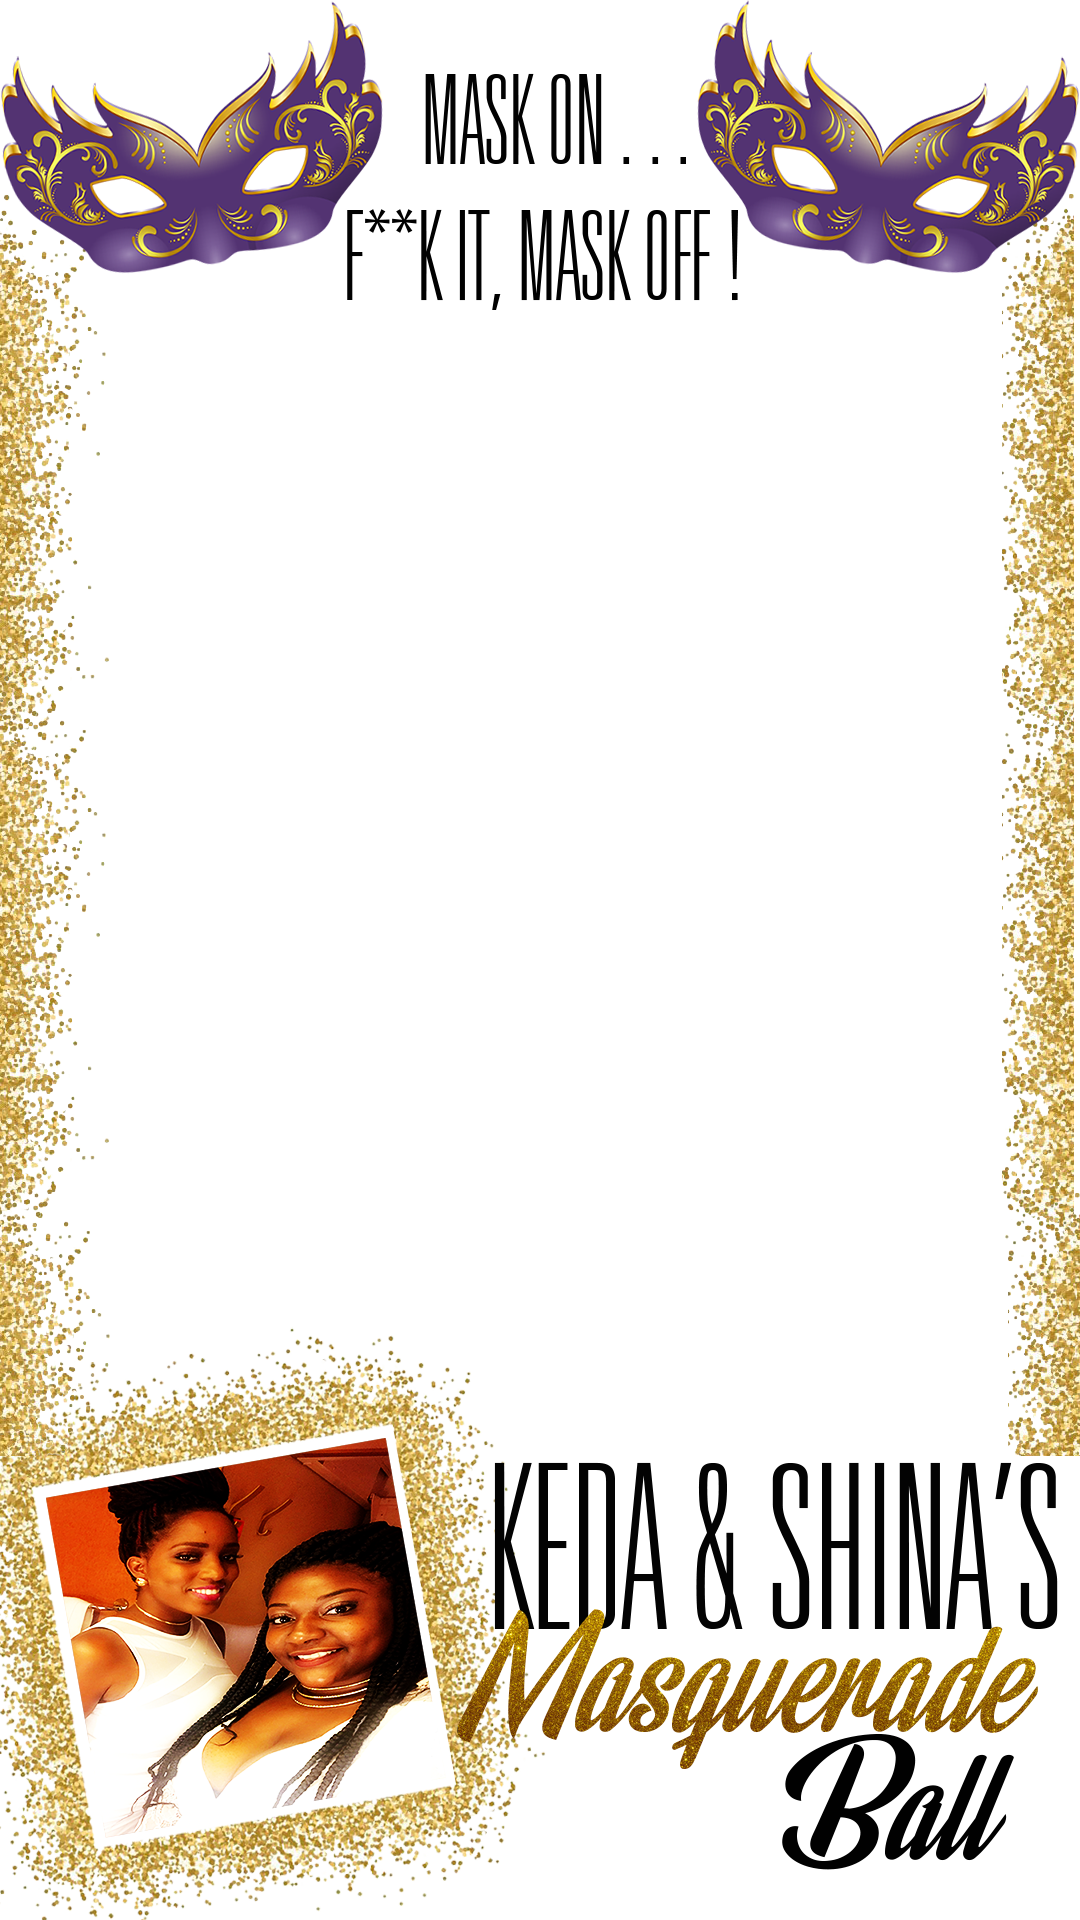 Image of Custom Snapchat Filter Design